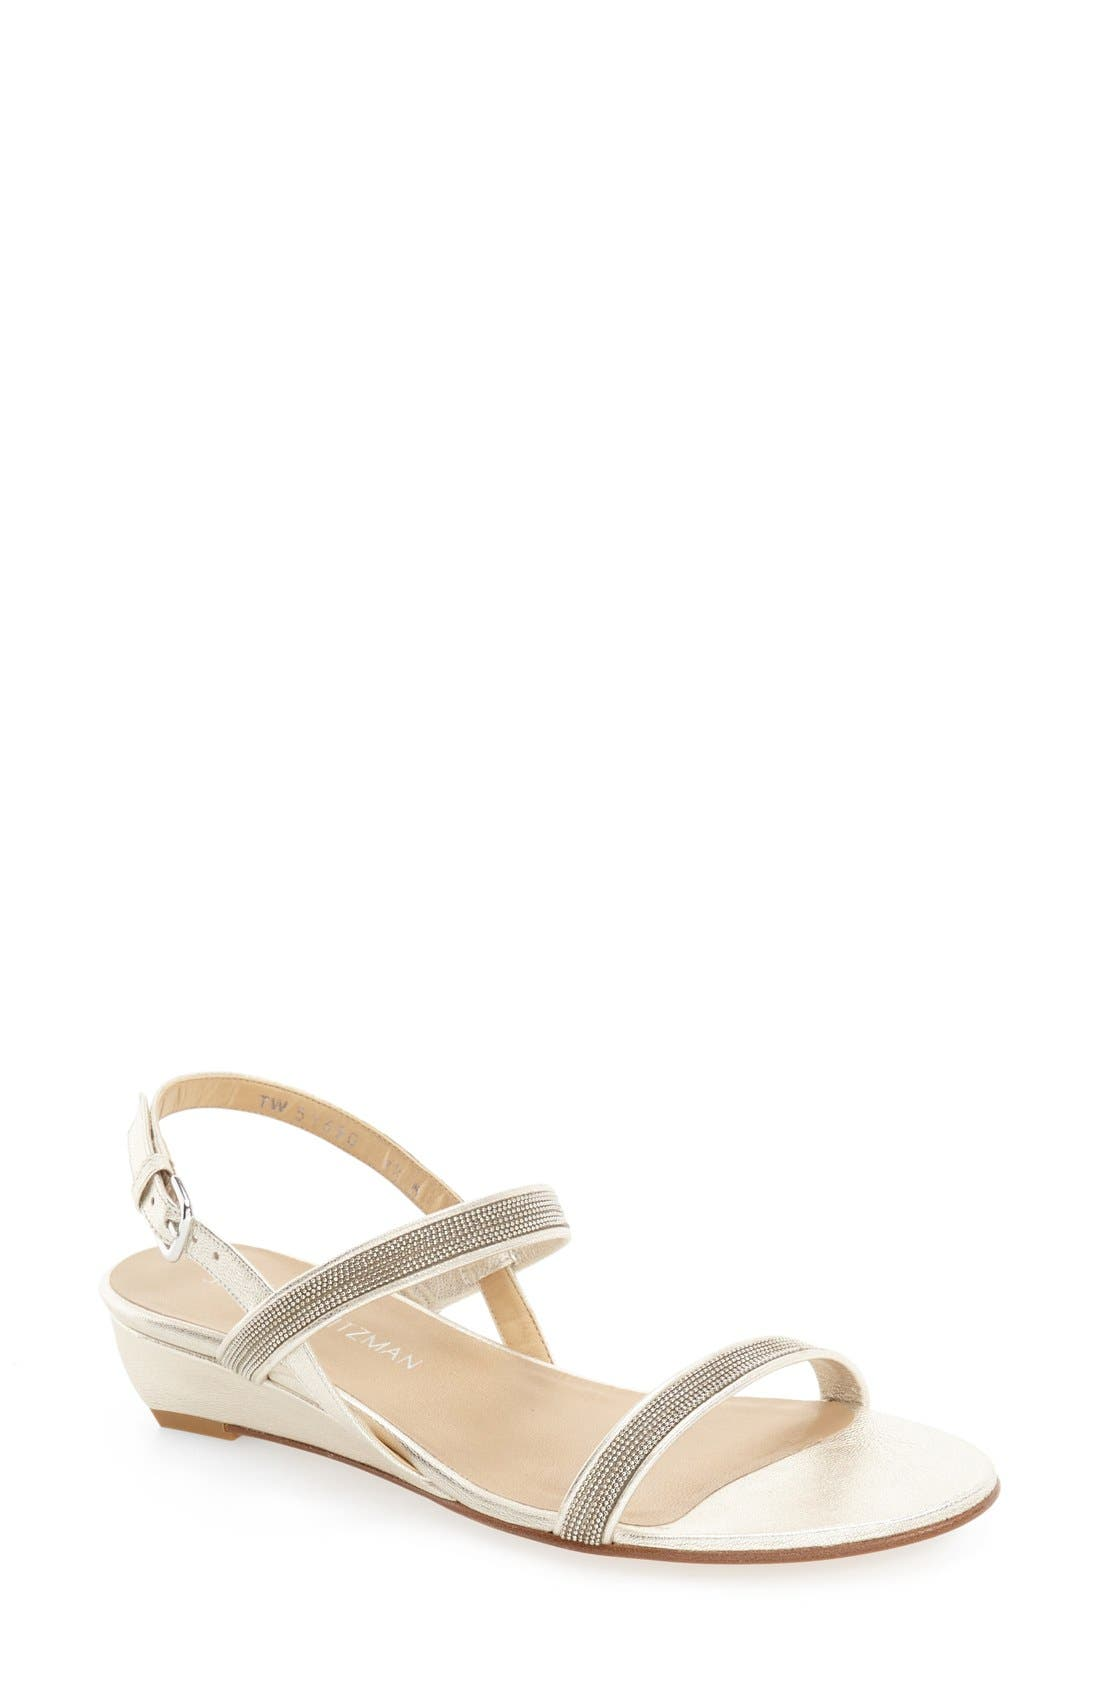 Alternate Image 1 Selected - Stuart Weitzman 'In Chains' Wedge Sandal (Women)